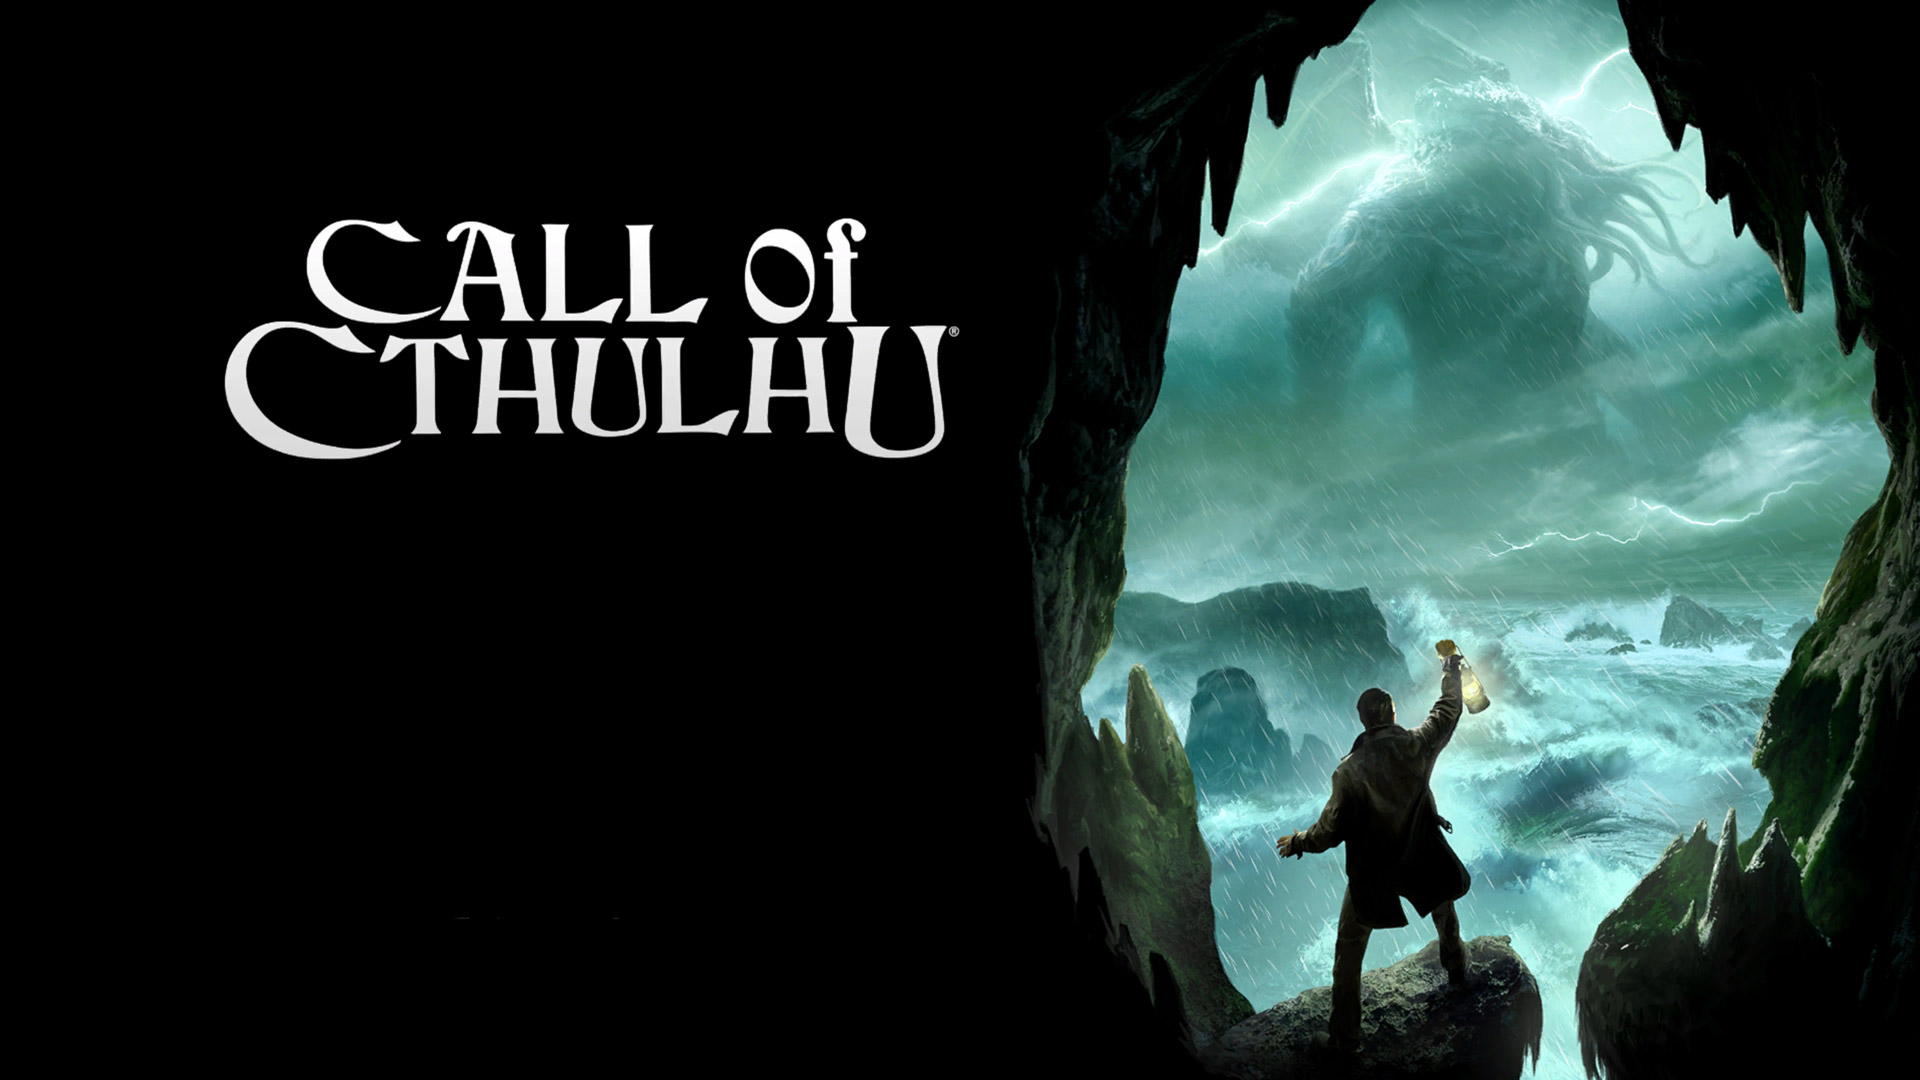 Free Call of Cthulhu Wallpaper in 1920x1080